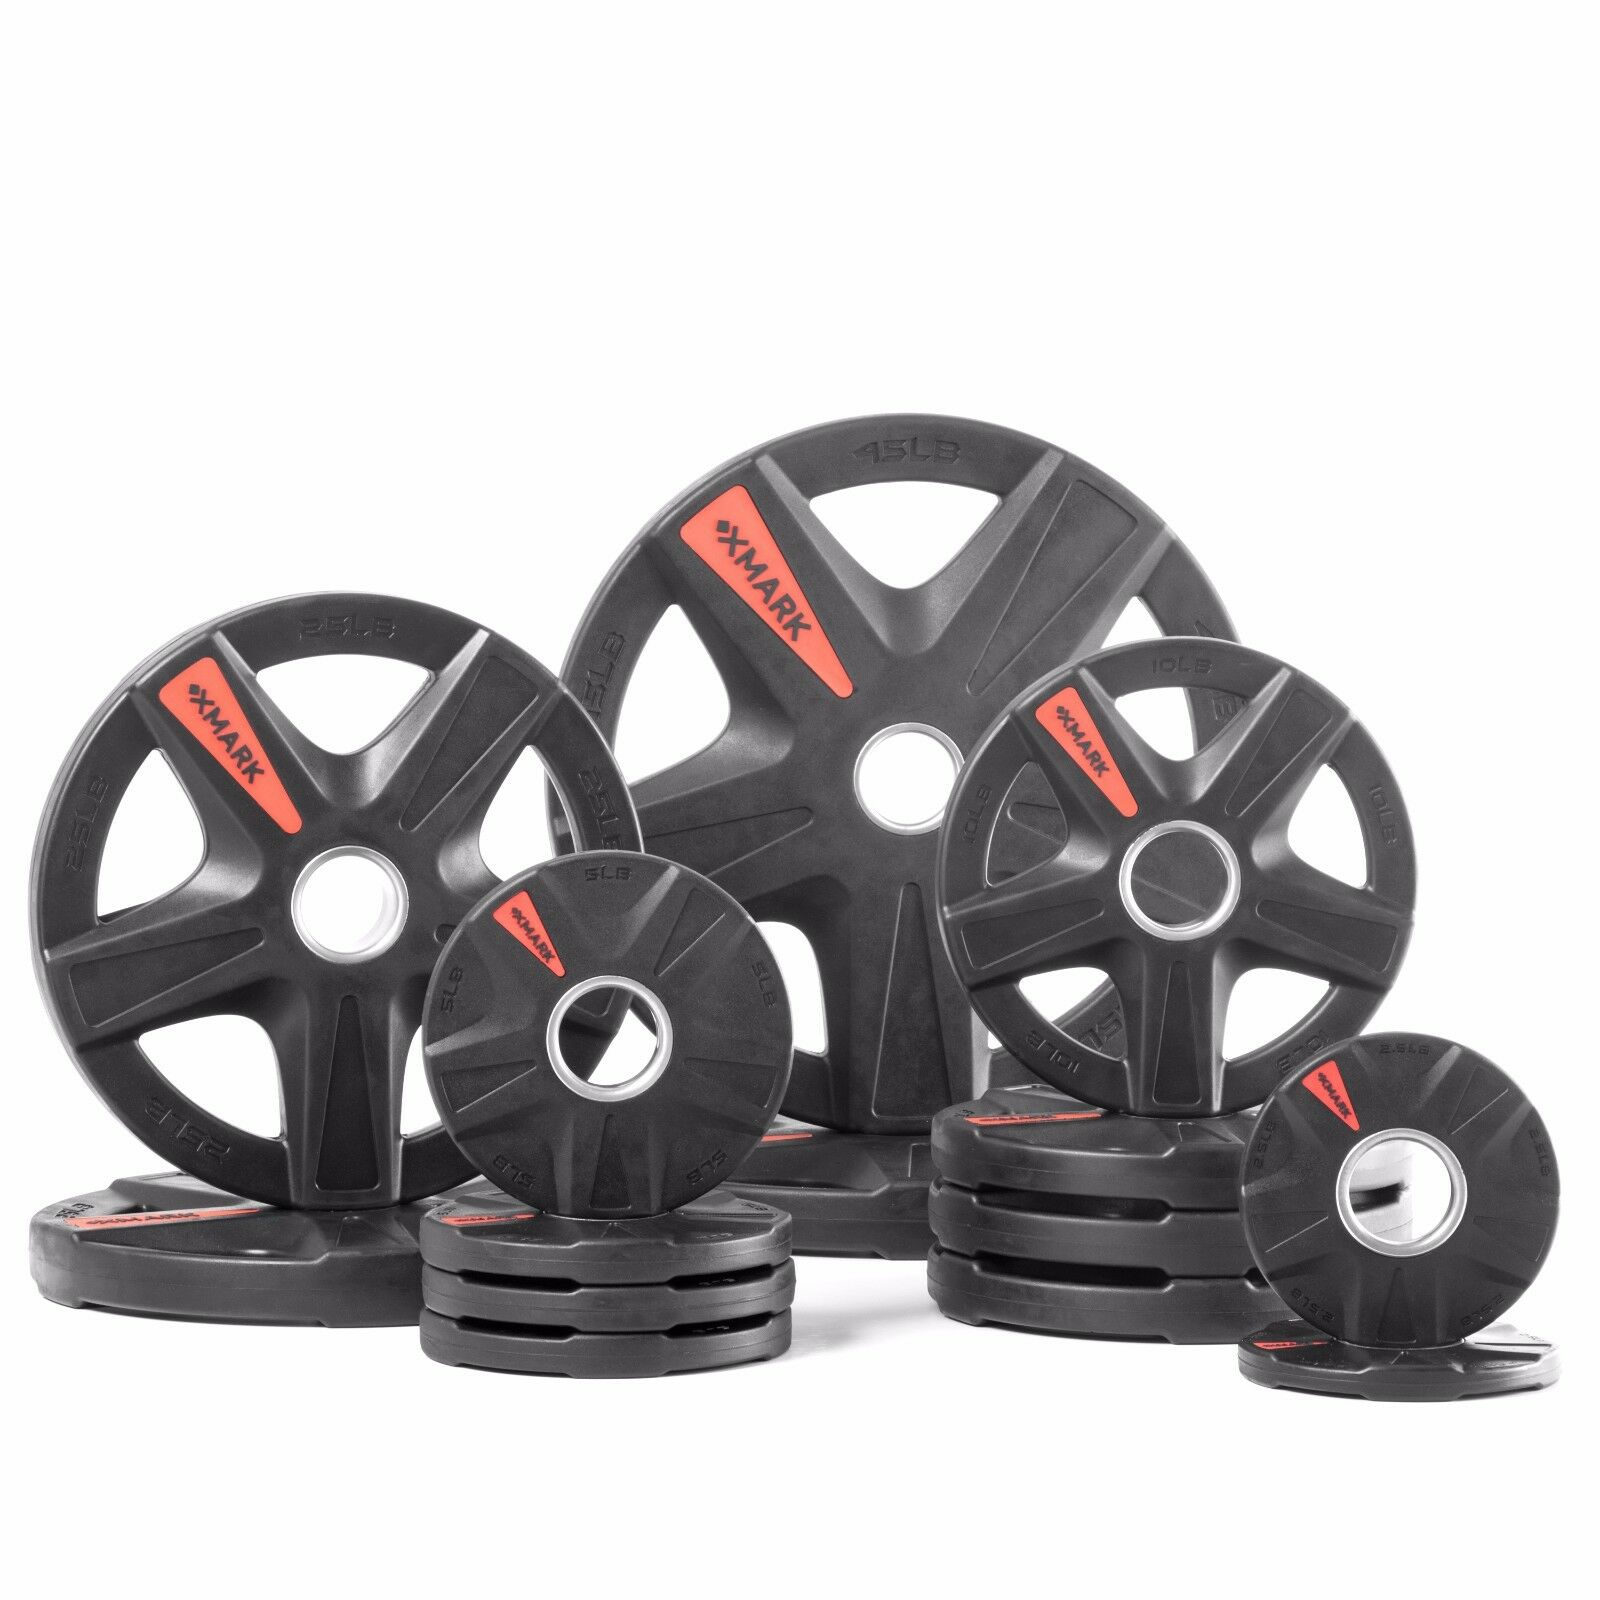 XMark's TEXAS STAR 205 lb. Select Rubber Coated Olympic set XM-3389-BAL-205